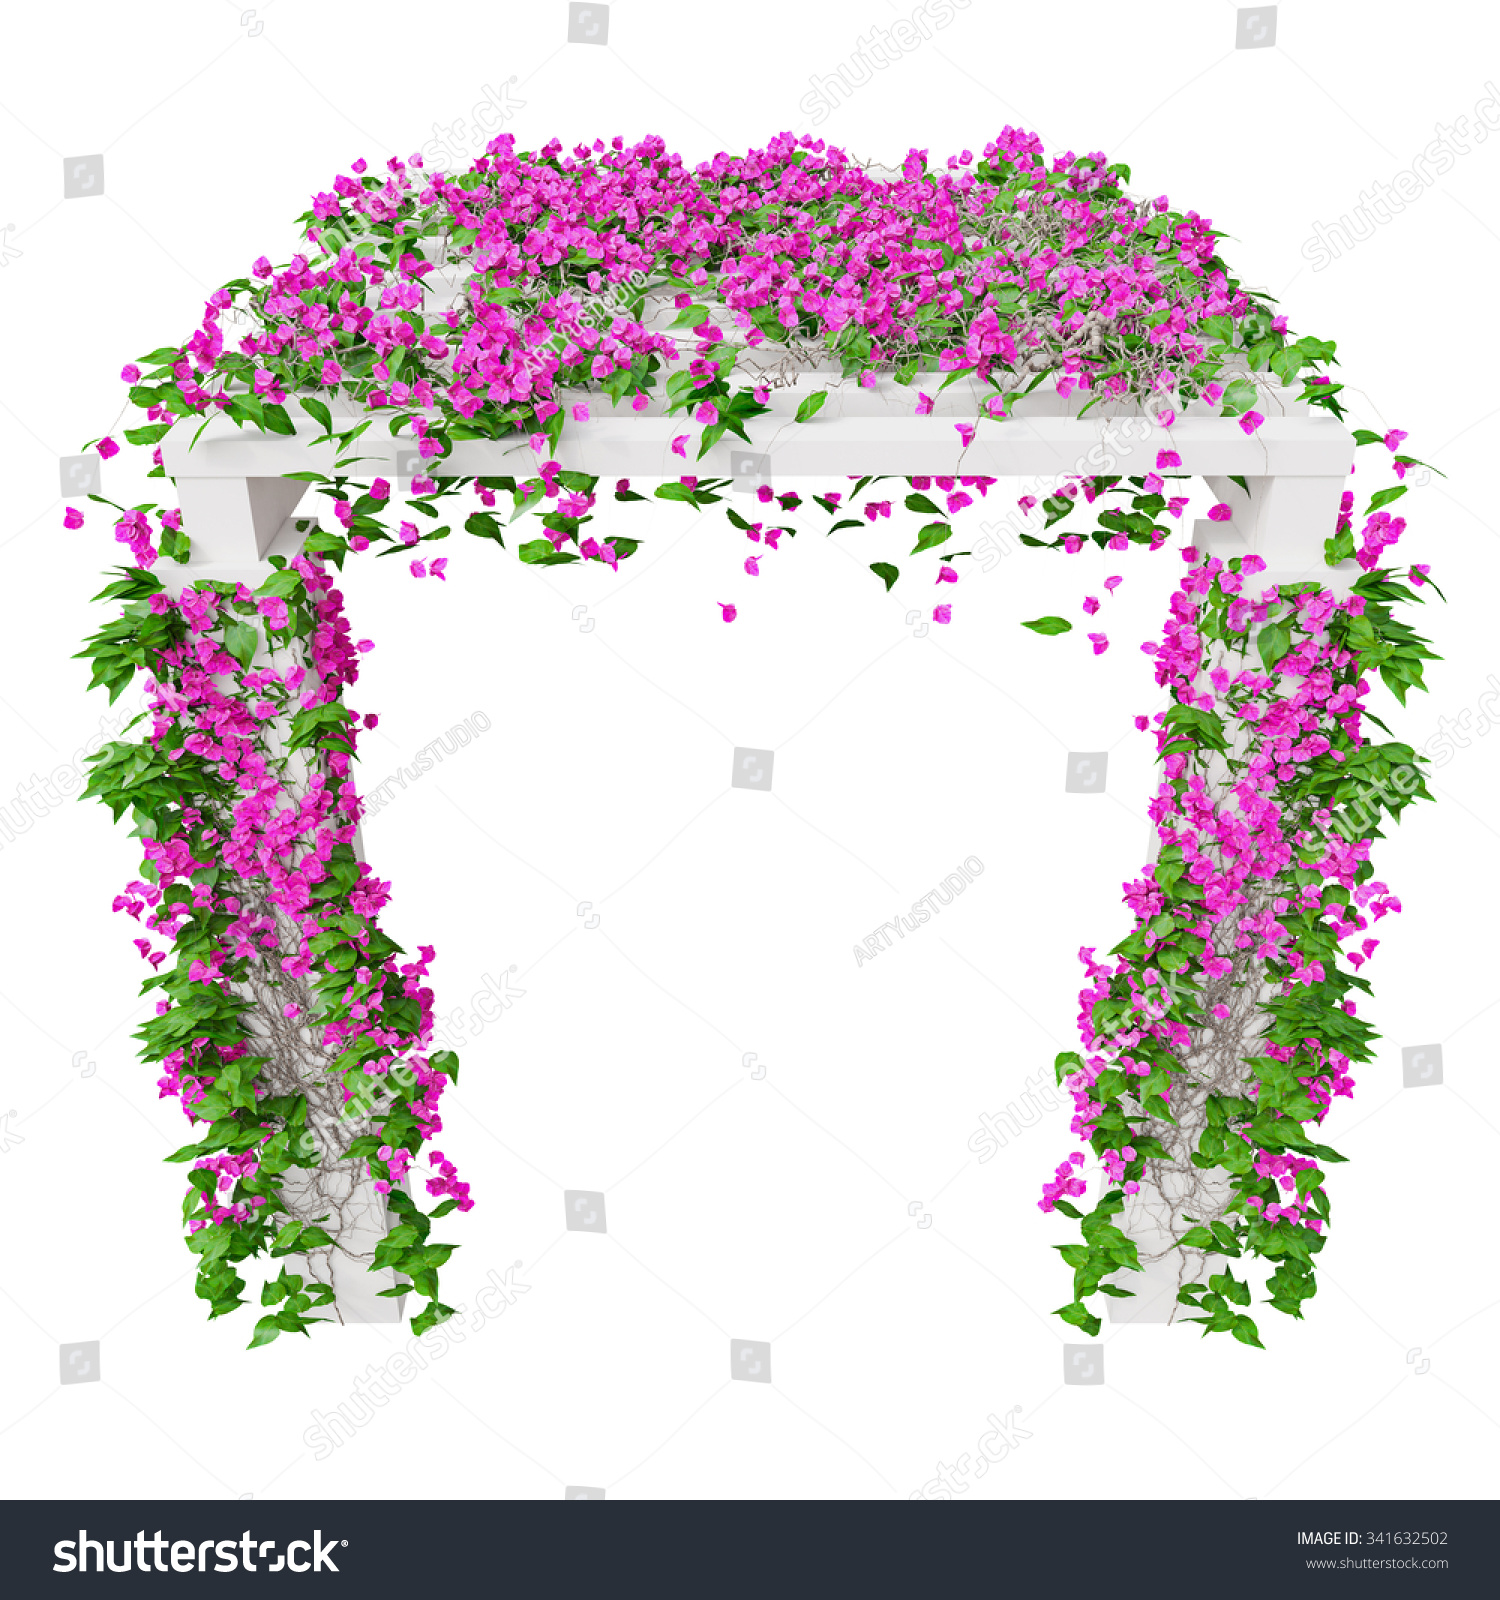 Pink Climbing Flowers Bougainvillea 3 D Graphic Stock Illustration